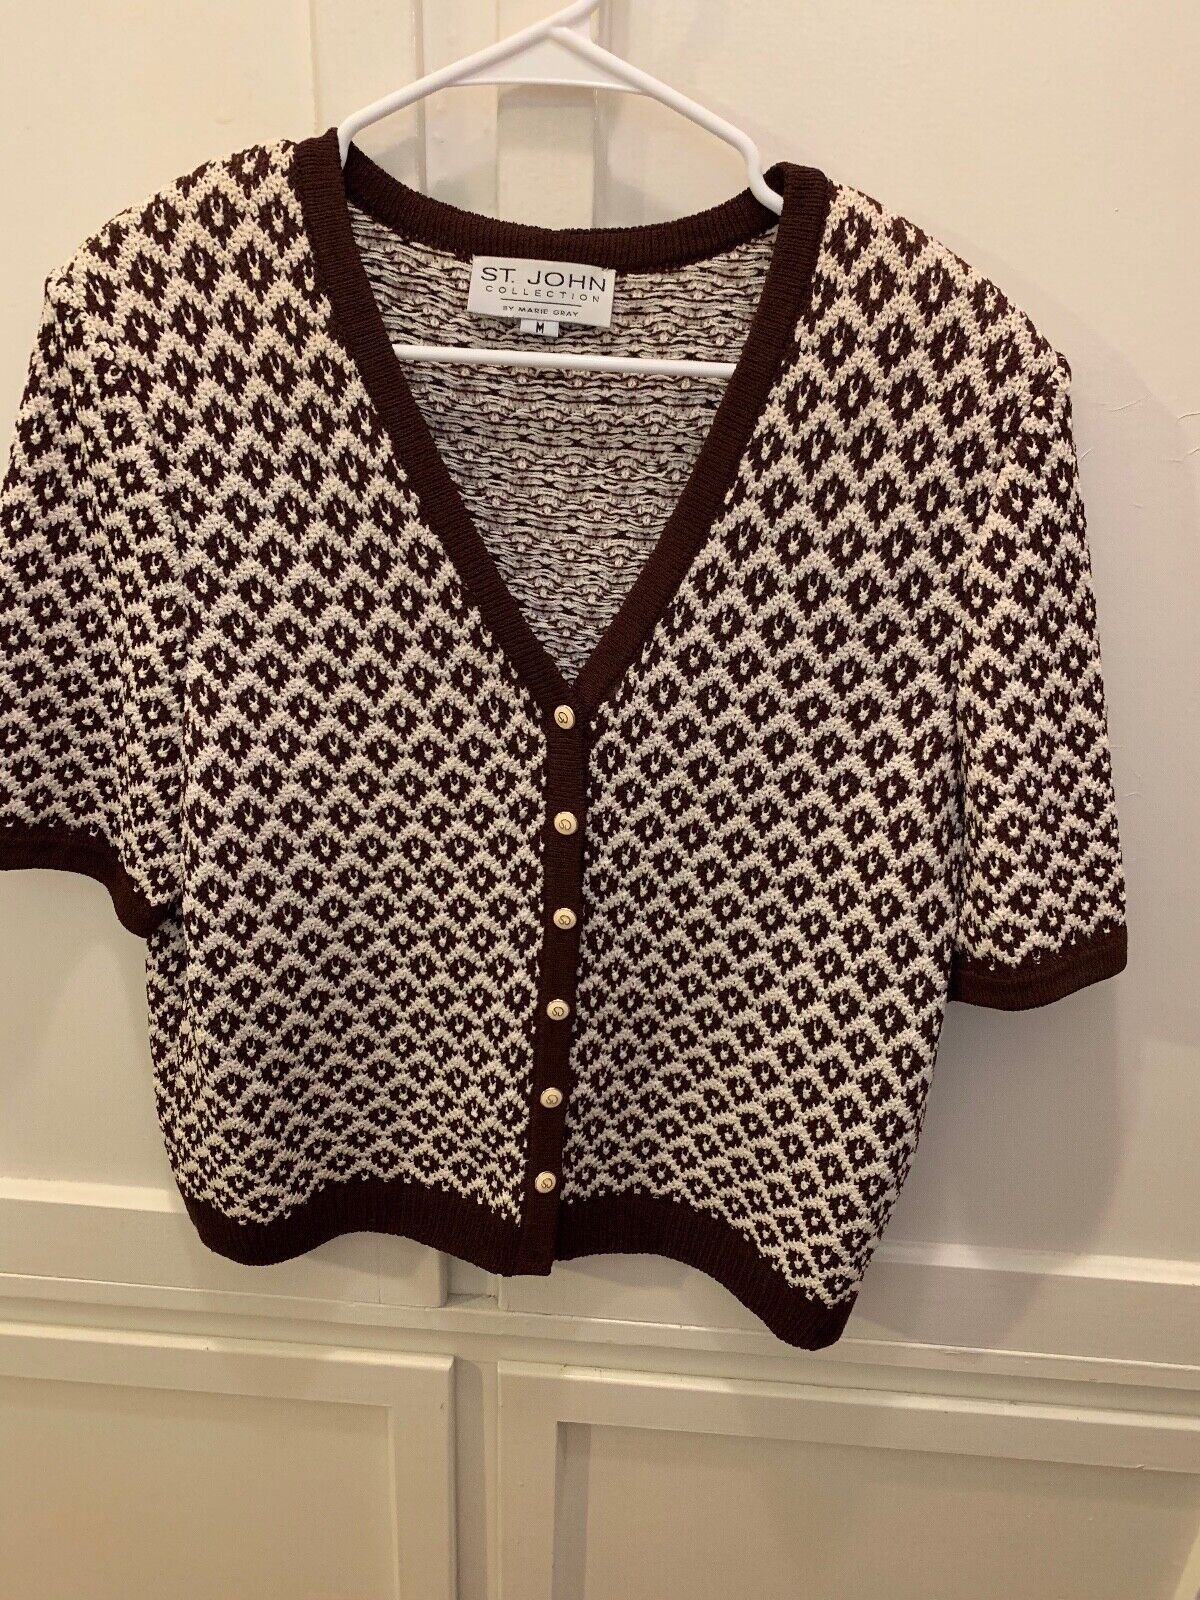 ST. JOHN COLLECTIONS BROWN WHITE KNIT SHORT SLEEVE SWEATER TOP SZ M SHOULDER PAD